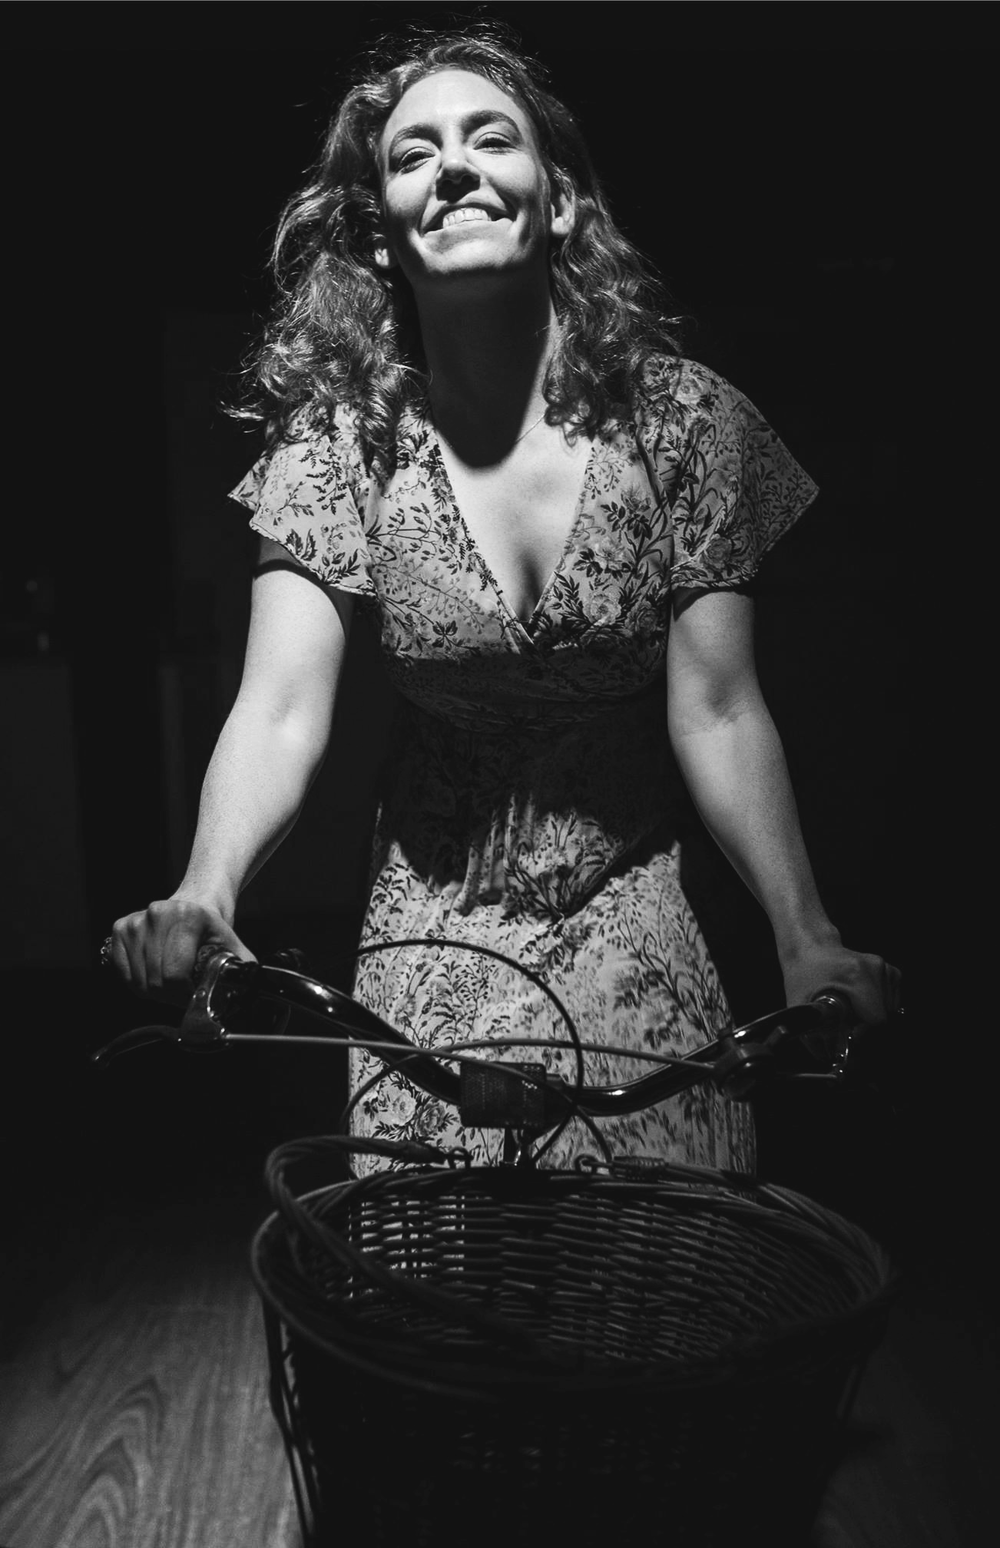 Gabrielle Scawthorne in The Village Bike, 2017 (Photography by Andre Vasquez)